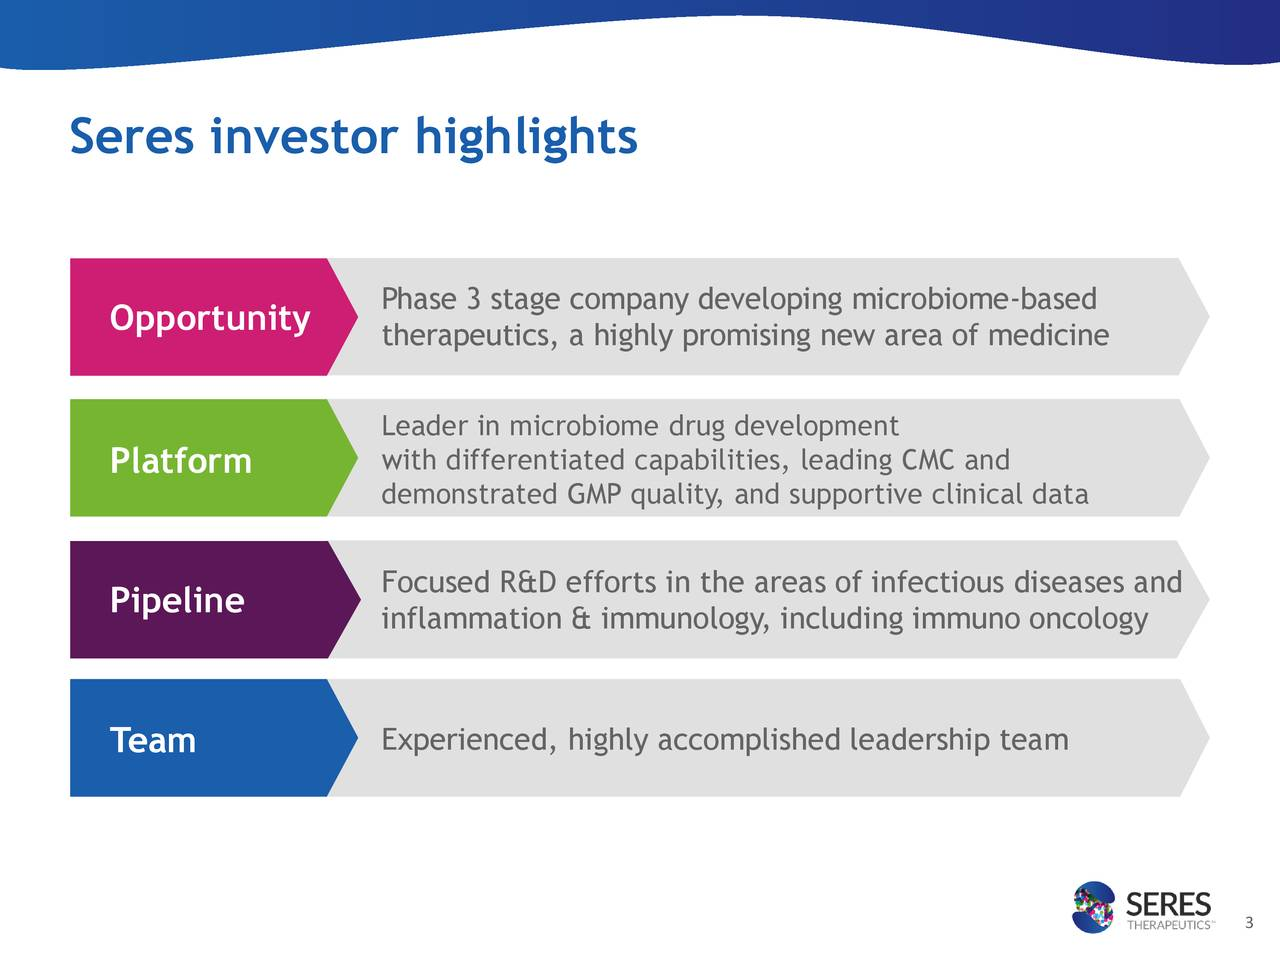 Opportunity Phase 3 stage company developing microbiome-based therapeutics, a highly promising new area of medicine Leader in microbiome drug development Platform with differentiated capabilities, leading CMC and demonstrated GMP quality, and supportive clinical data Pipeline Focused R&D efforts in the areas of infectious diseases and inflammation & immunology, including immuno oncology Experienced, highly accomplished leadership team Team 3